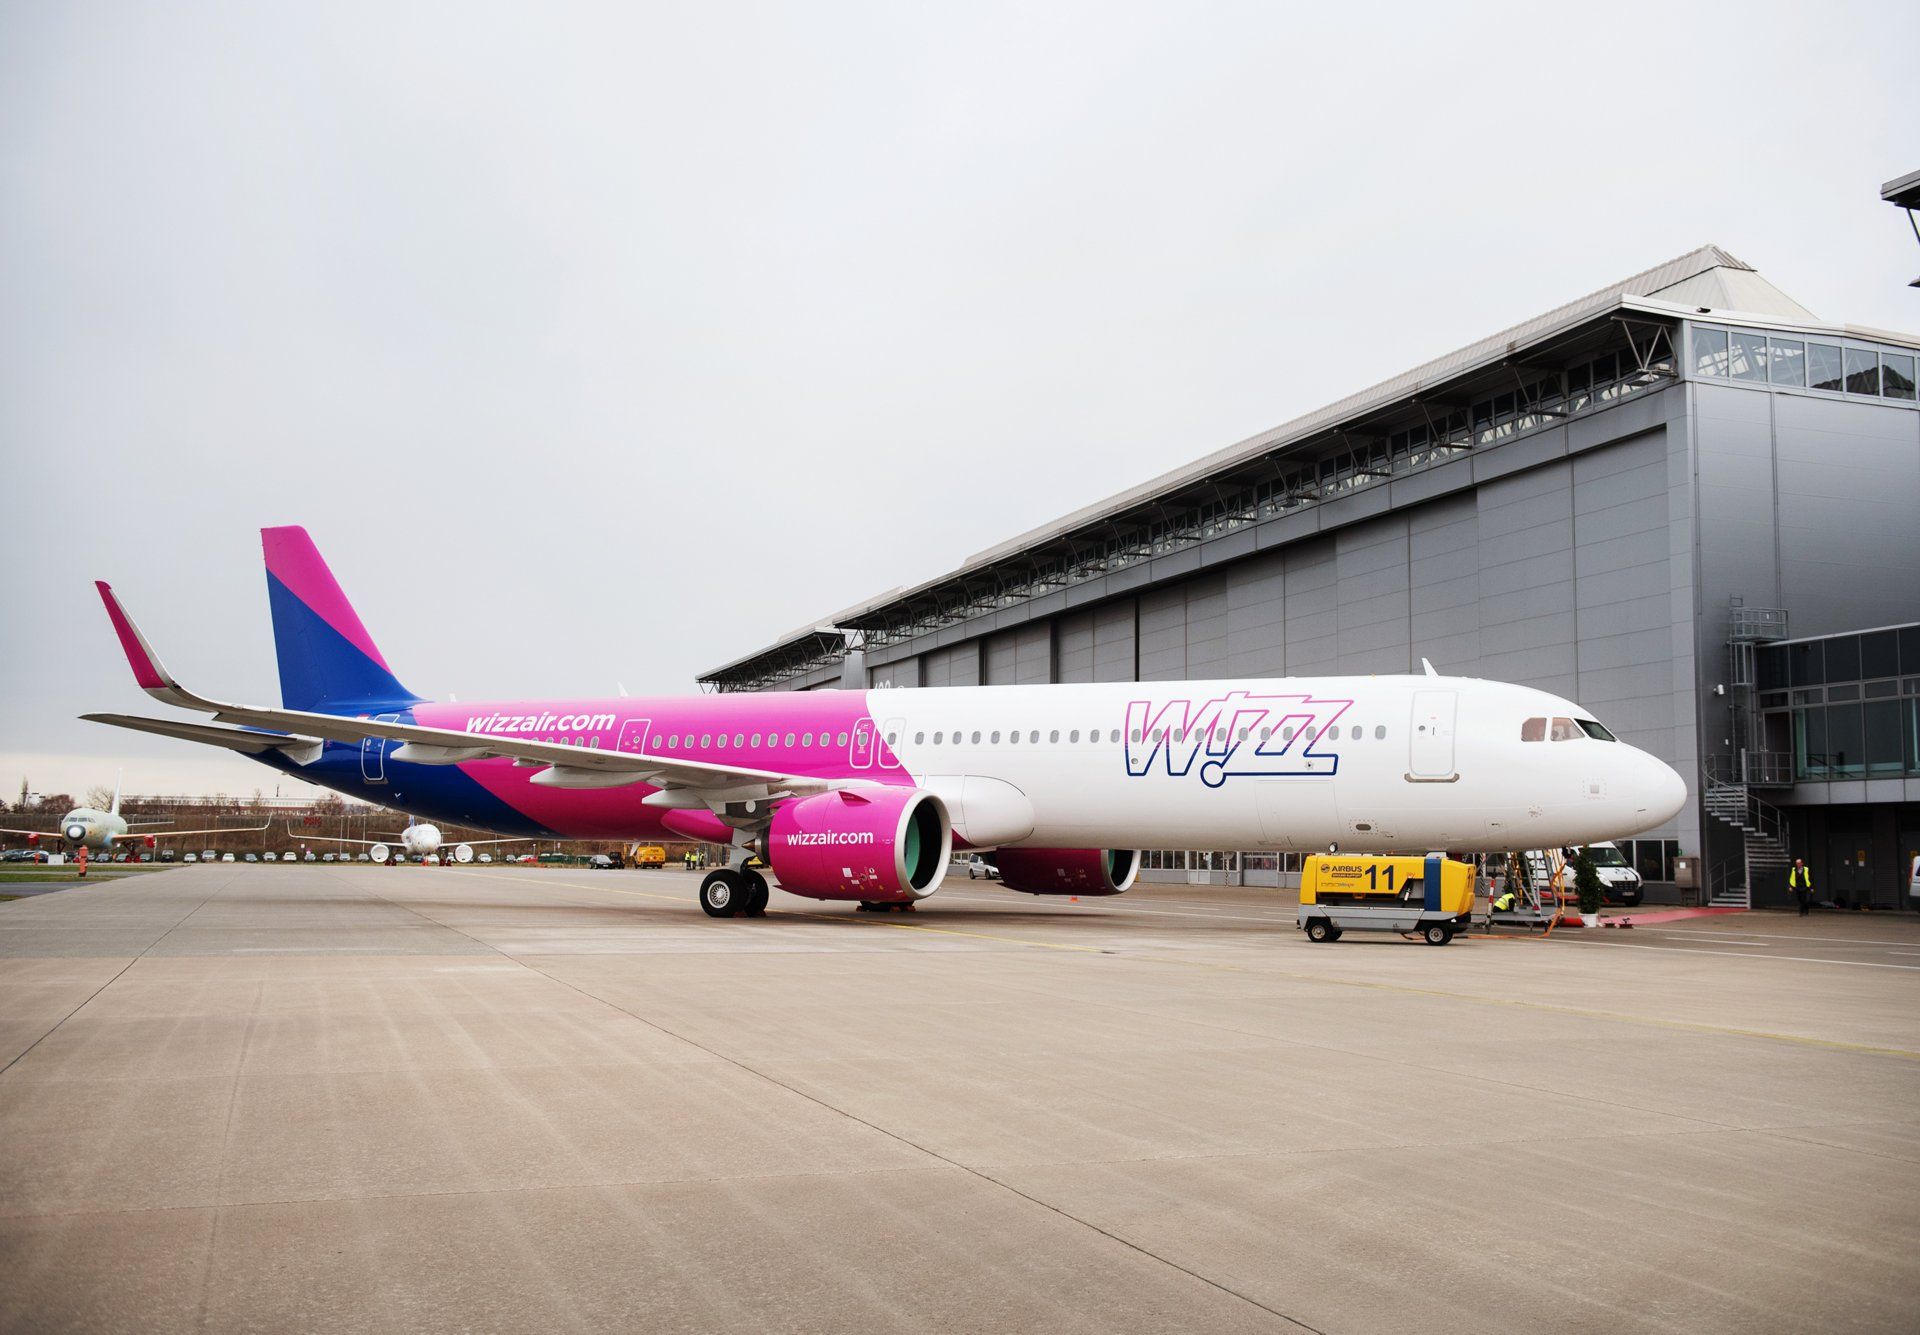 Wizz Air's initial A321neo